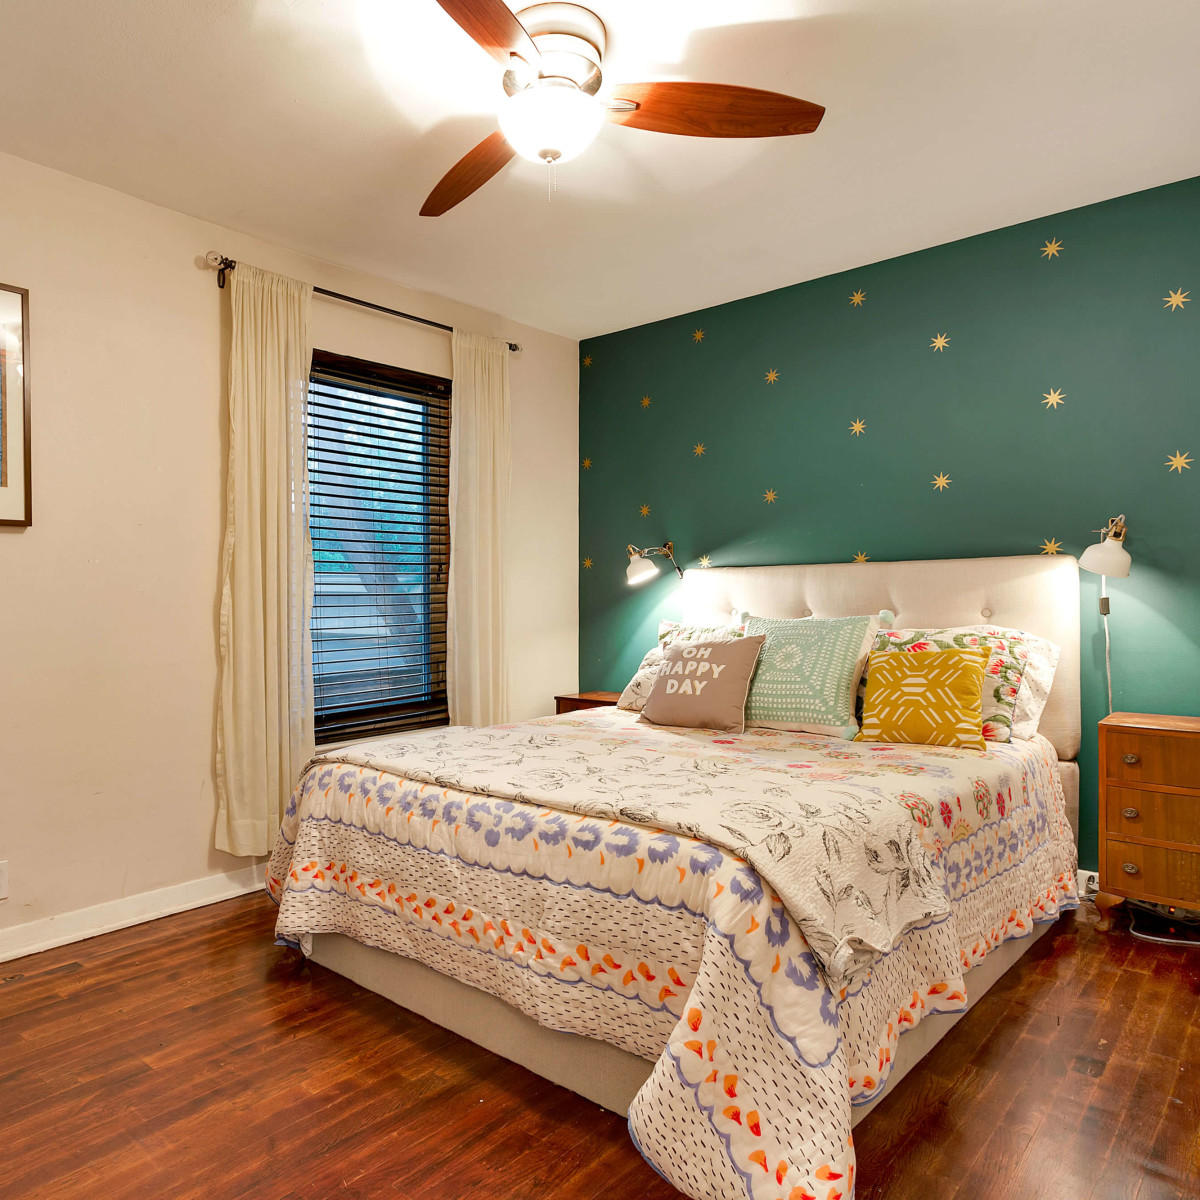 East Austin house home 1131 Poquito Street 78702 bedroom